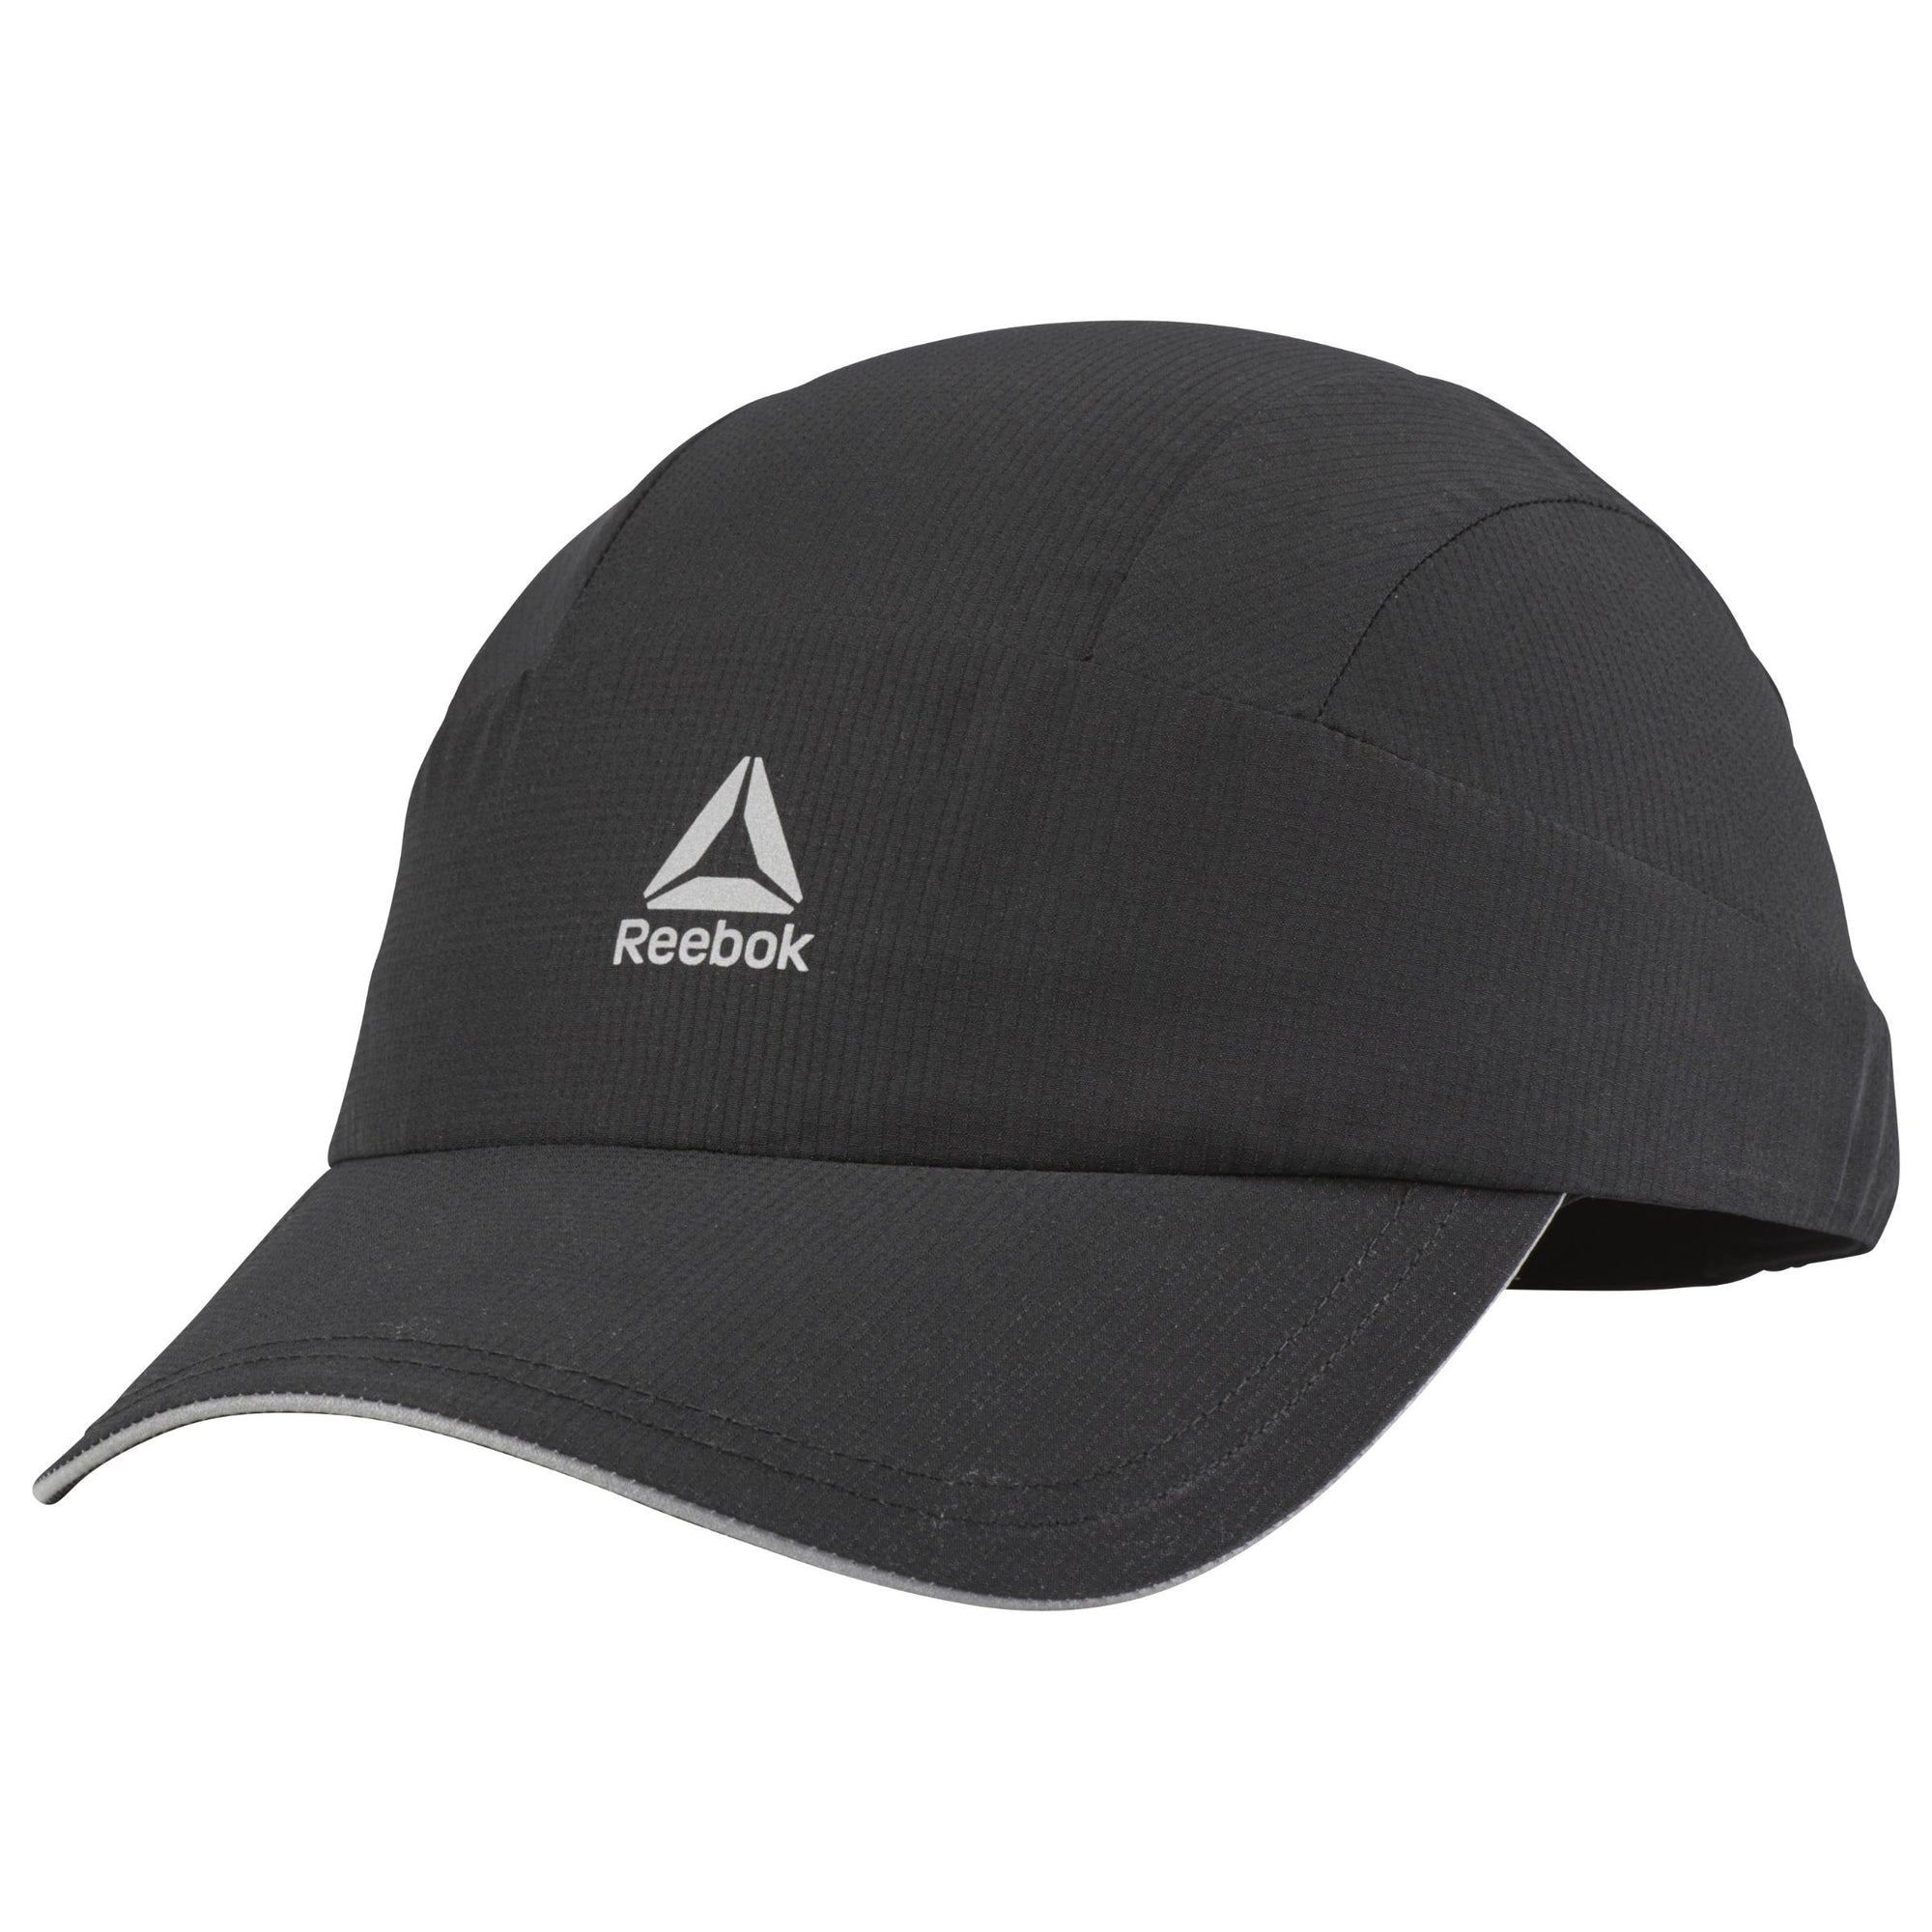 90f48a504a0 Buy Reebok One Series Running Performance Cap